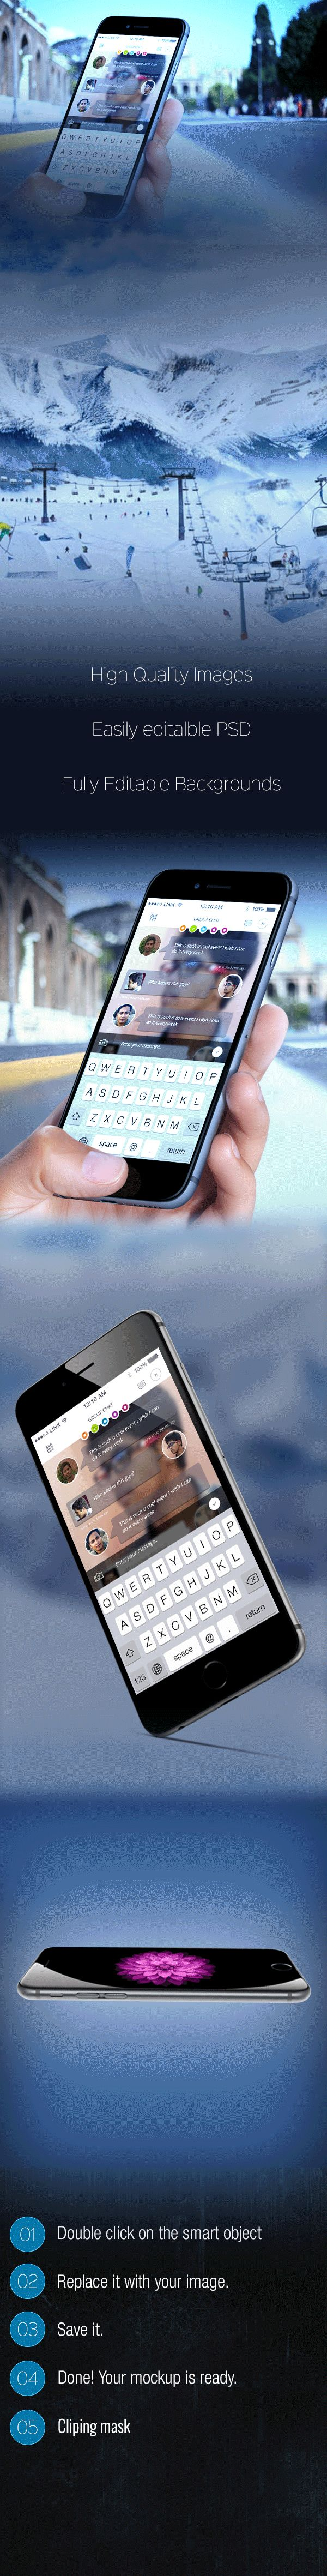 ios6 Chatting apps Design on Behance